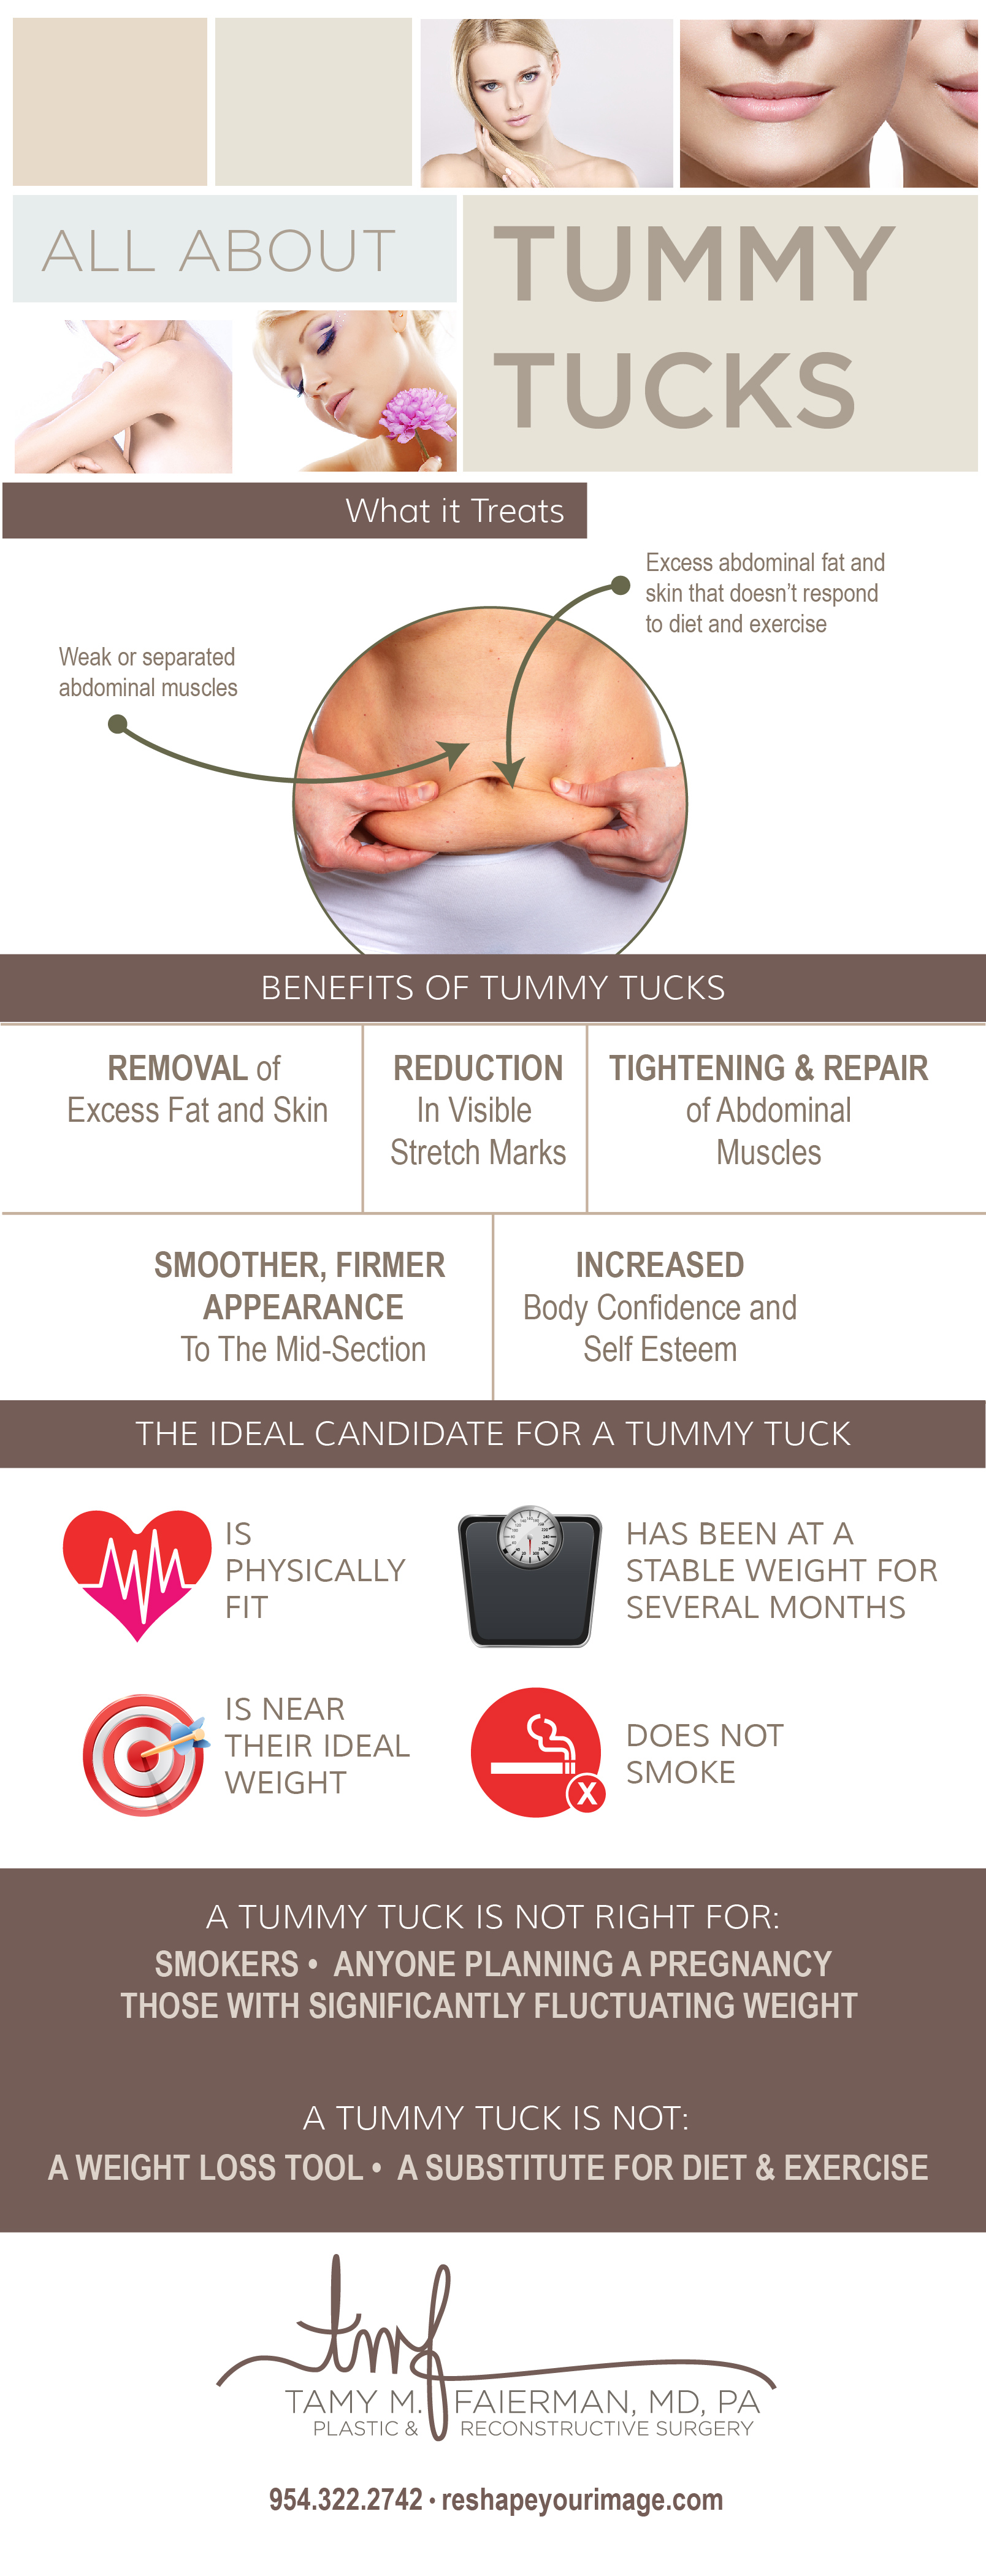 TummyTuckGraphic-01